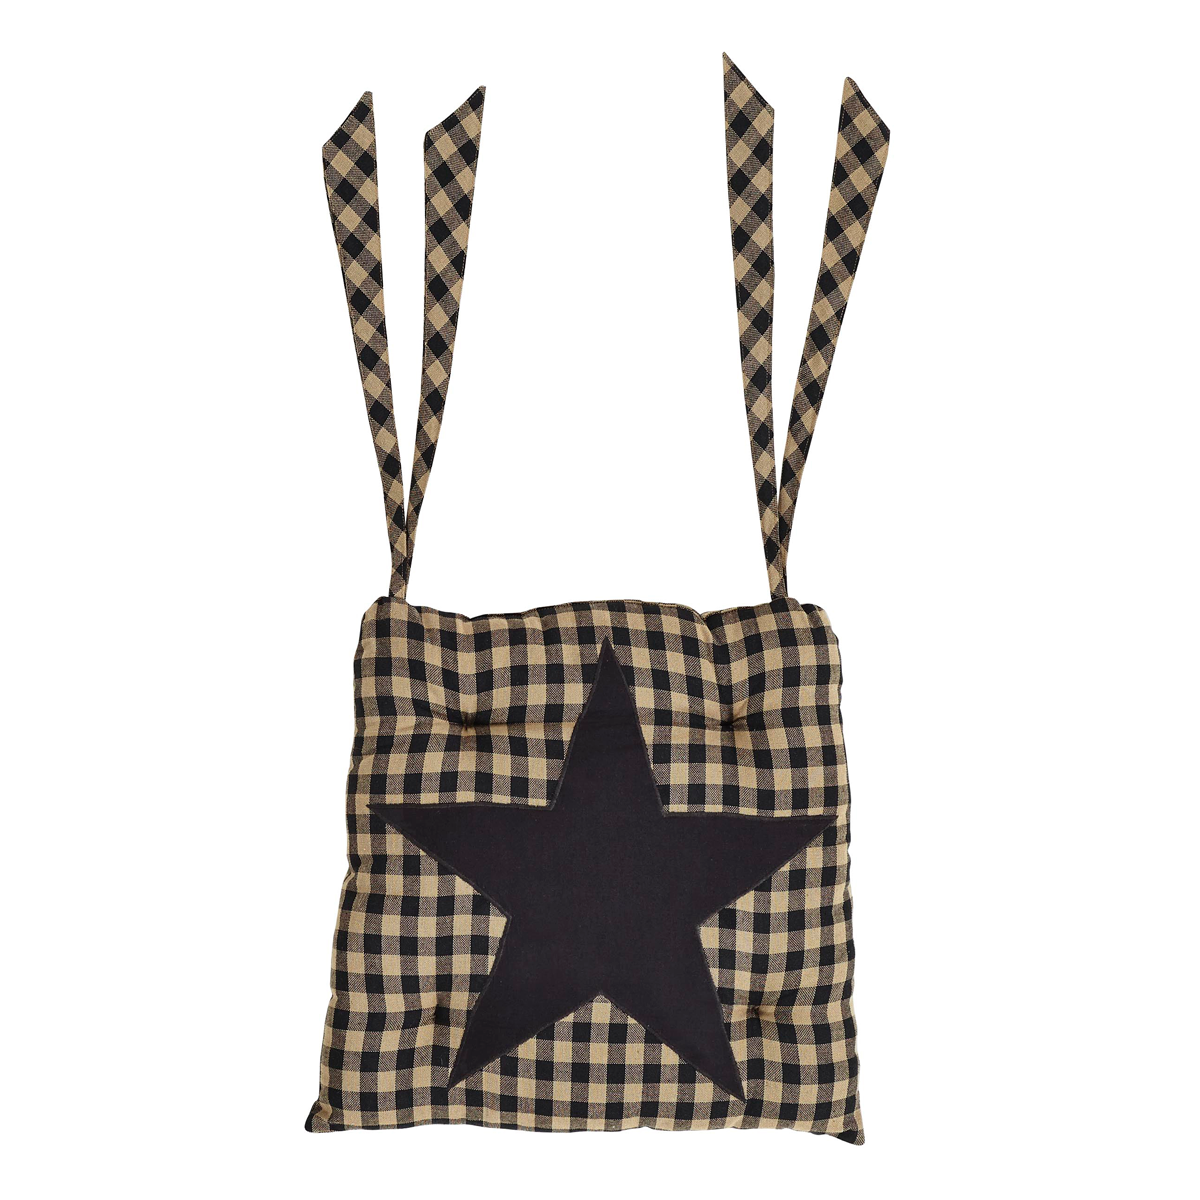 BLACK STAR Chair Pad - 15x15 - Country Farmhouse - Black/Tan Check  - VHC Brands